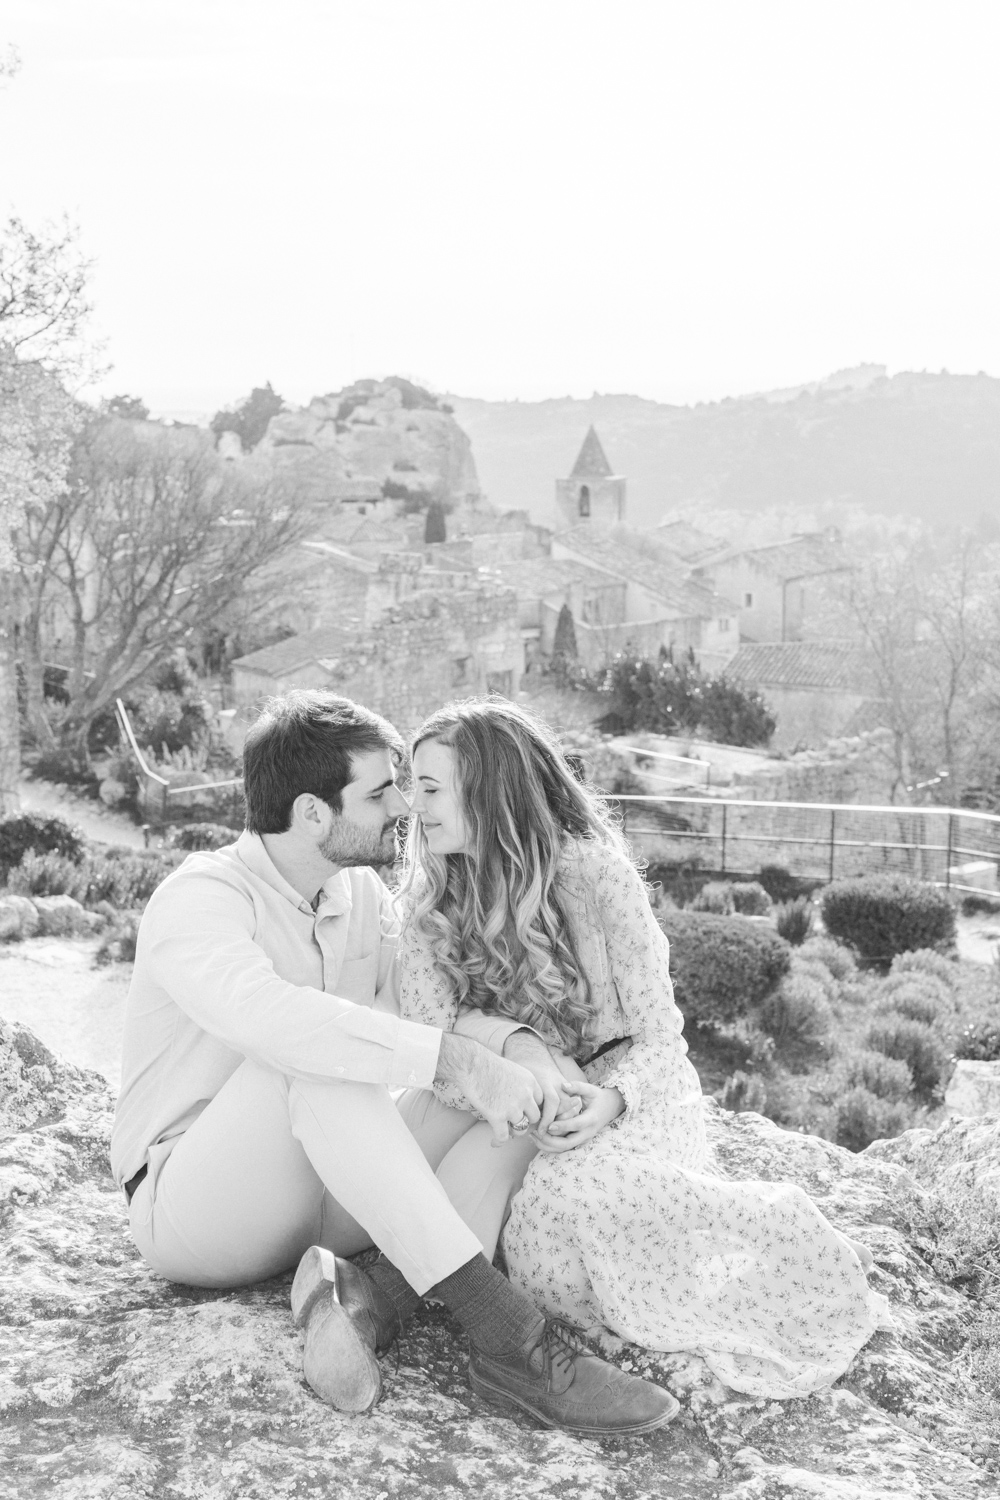 Chateau-des-Baux-de-Provence-Engagement-Session-10.jpg